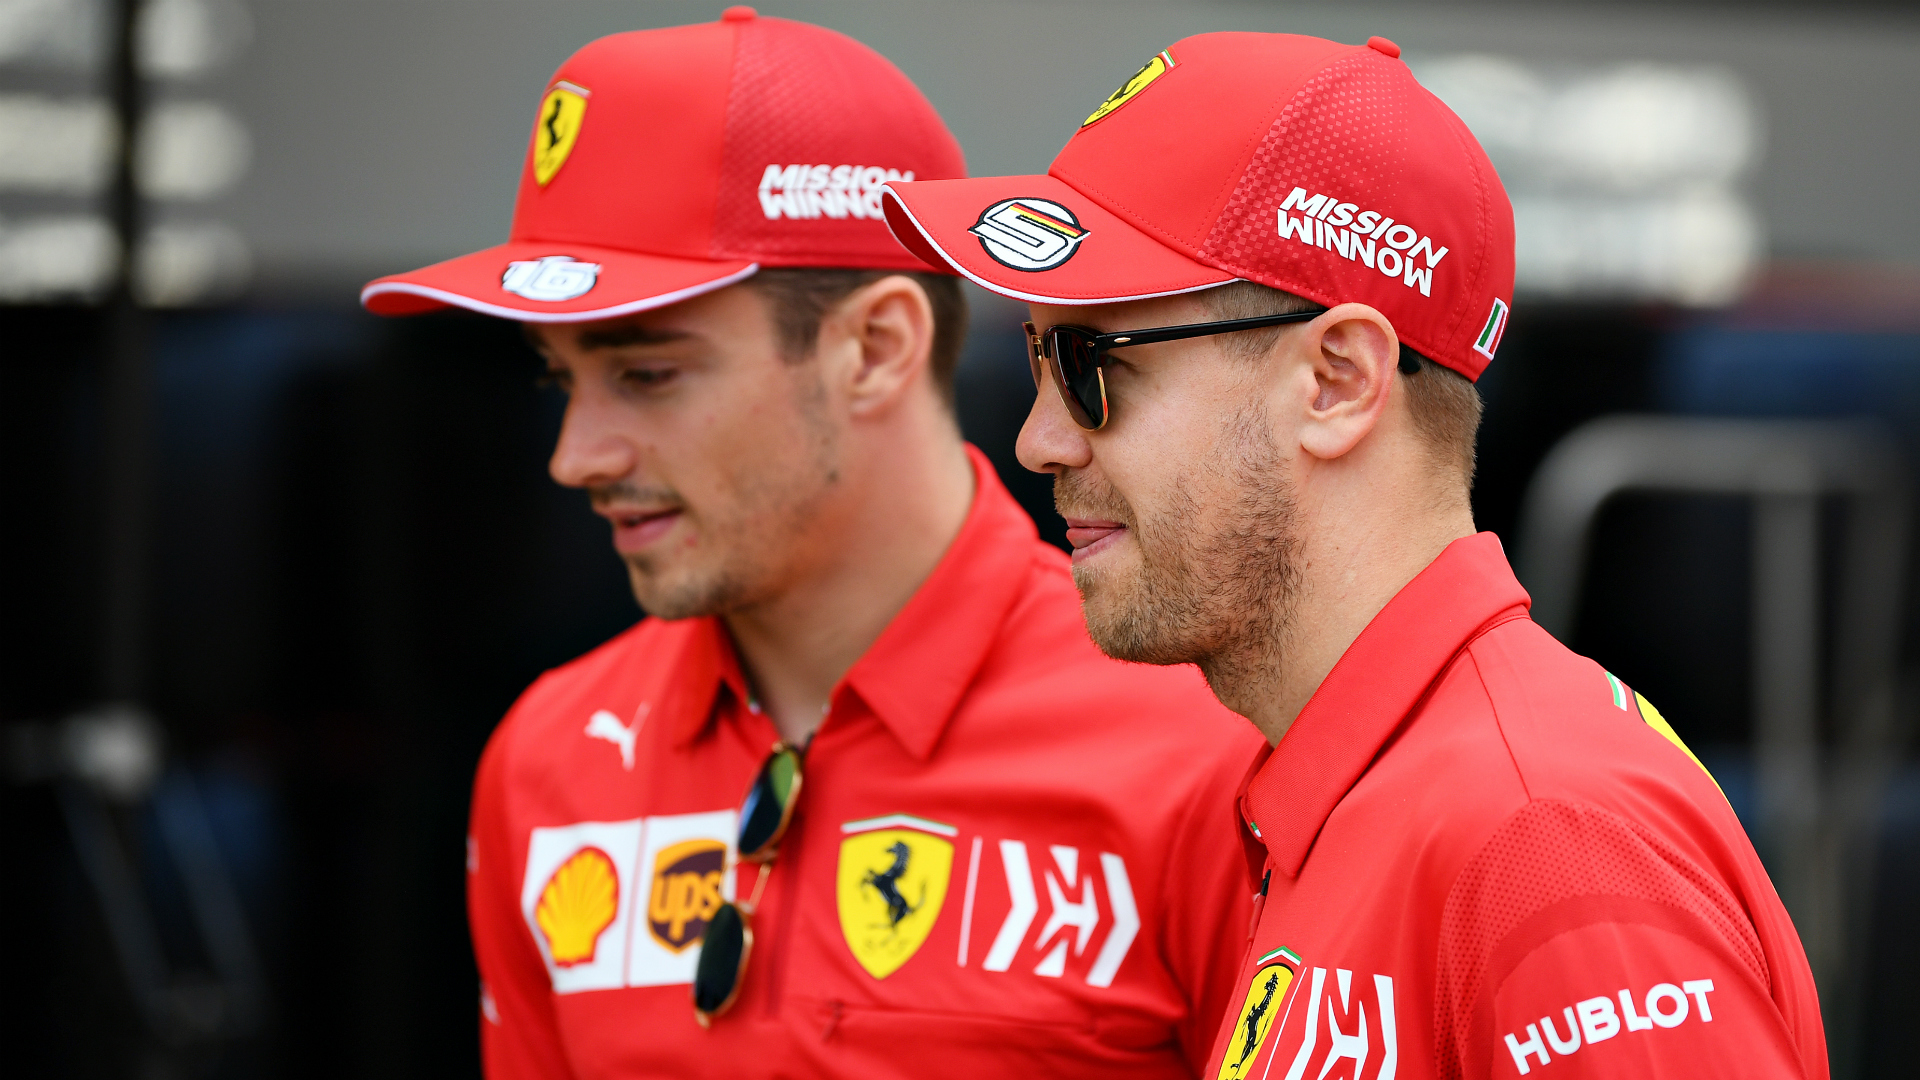 Leclerc is 'clearly better' than Vettel so Ferrari should get tough, says Irvine